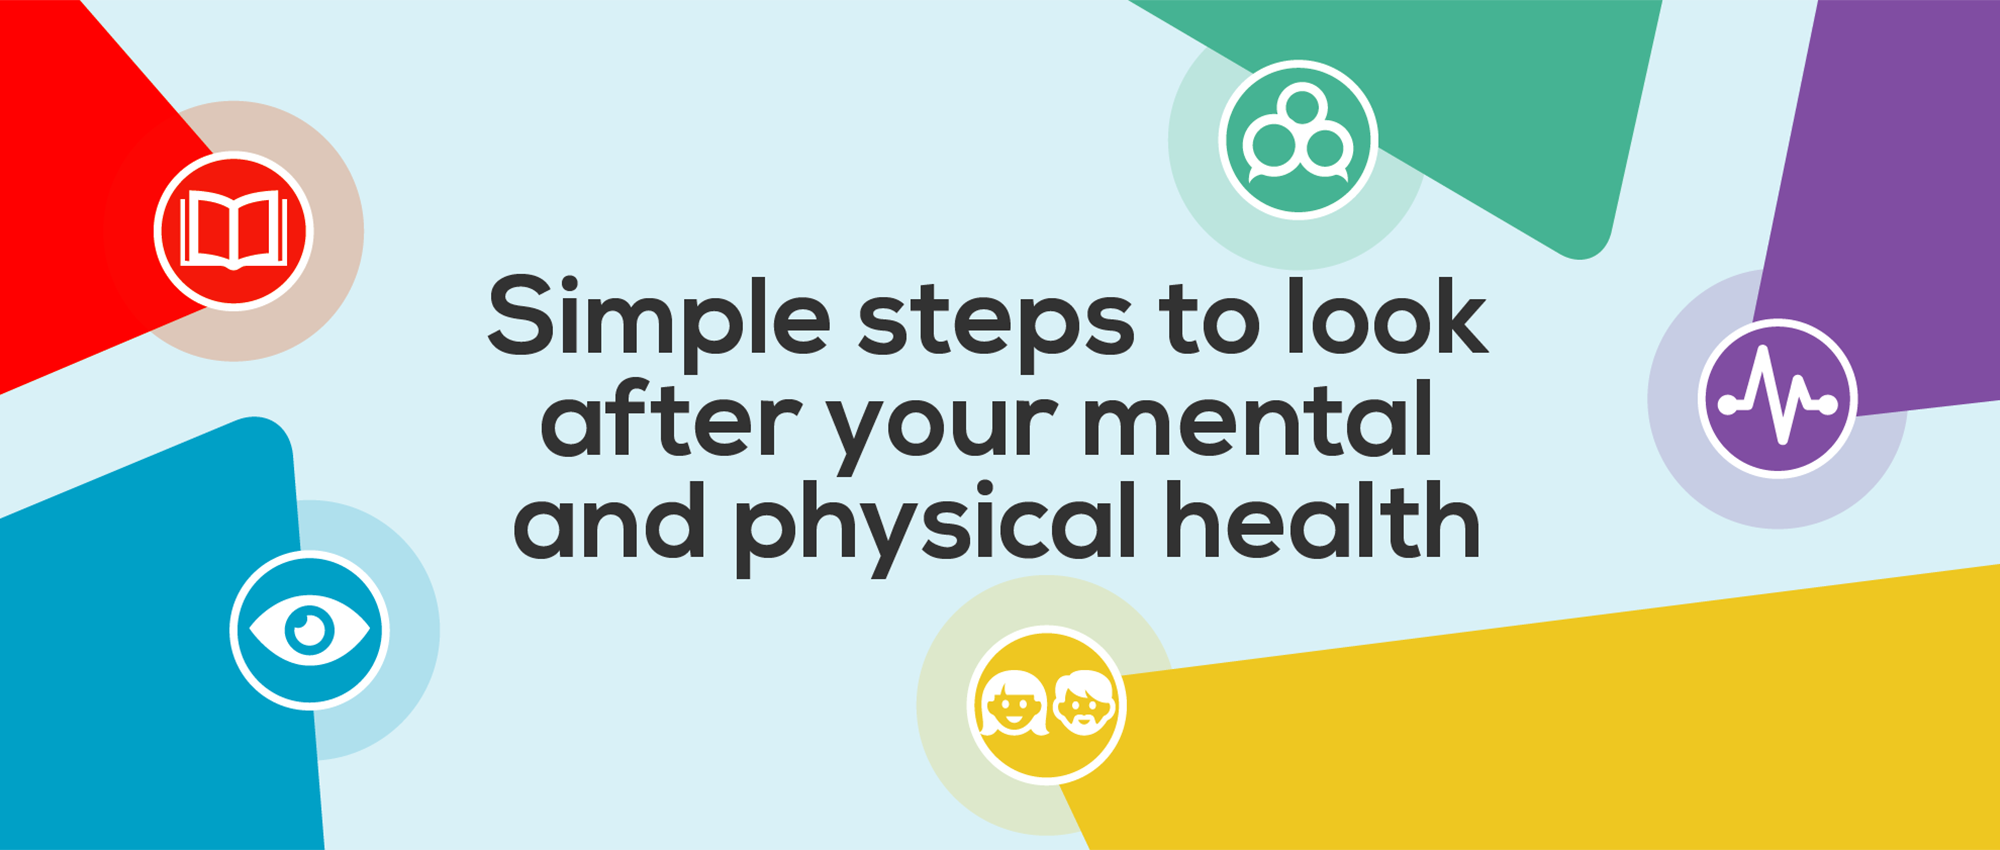 Simple steps to look after your mental and physical health